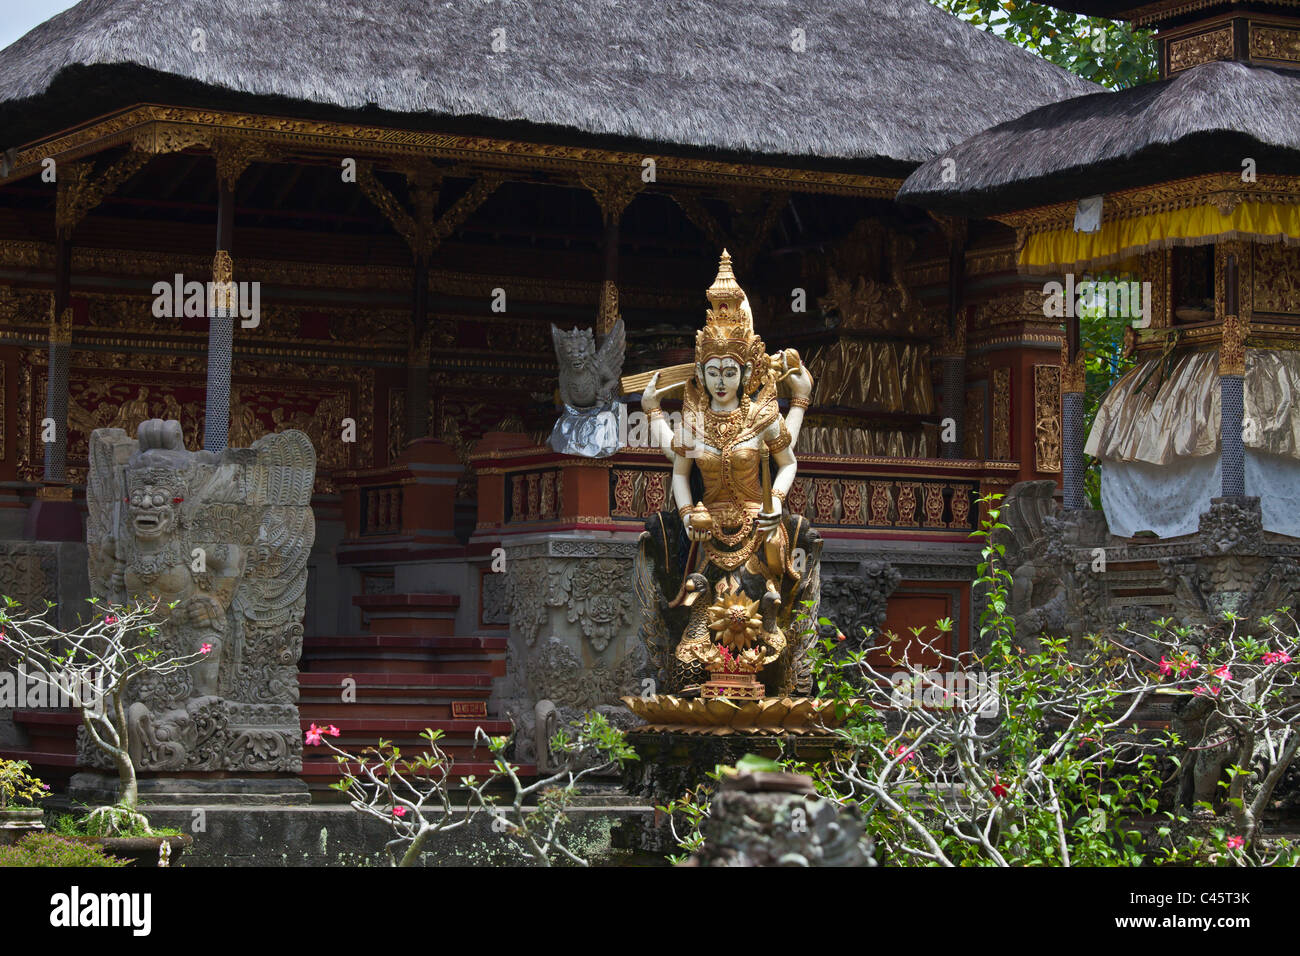 Sculpture of Hindu deity at PURA TAMAN SARASWATI - UBUD, BALI, INDONESIA - Stock Image